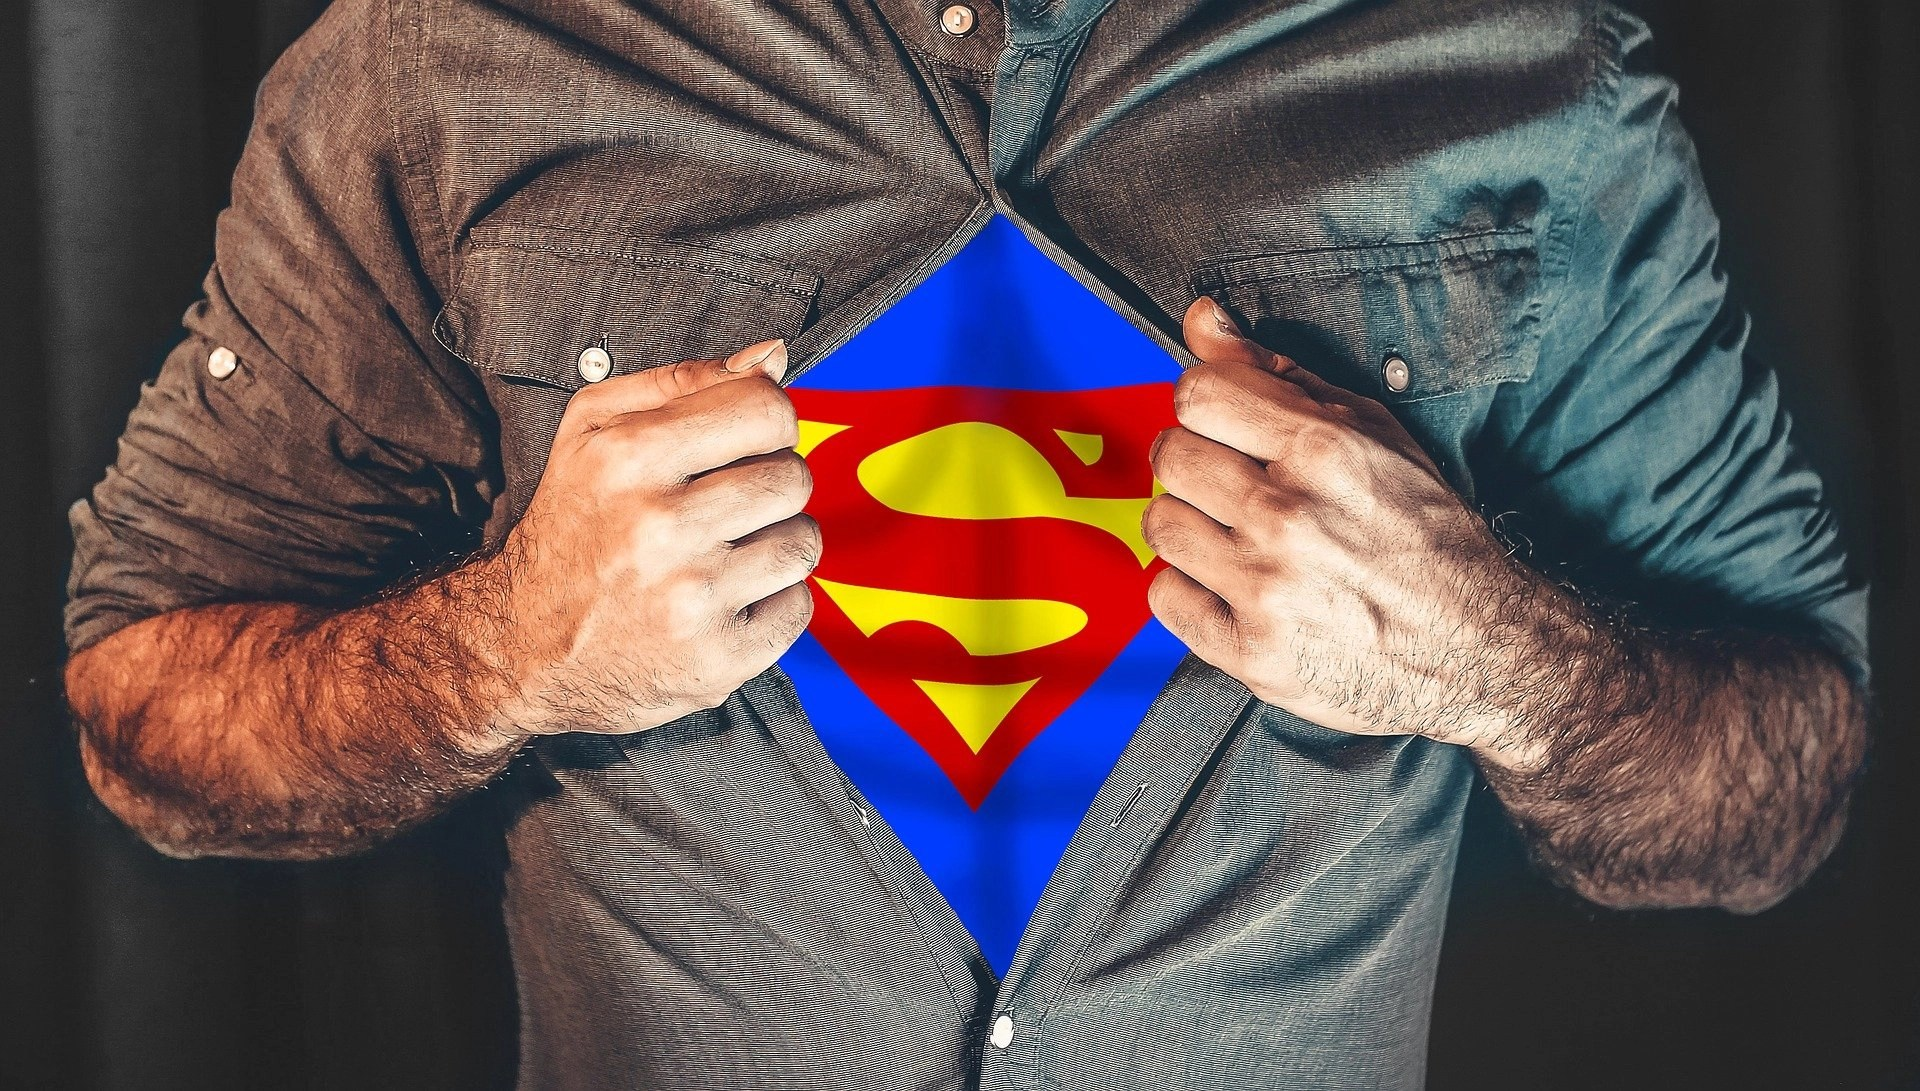 How To Beat The 4 Enemies Of Personal Growth Like A Superhero